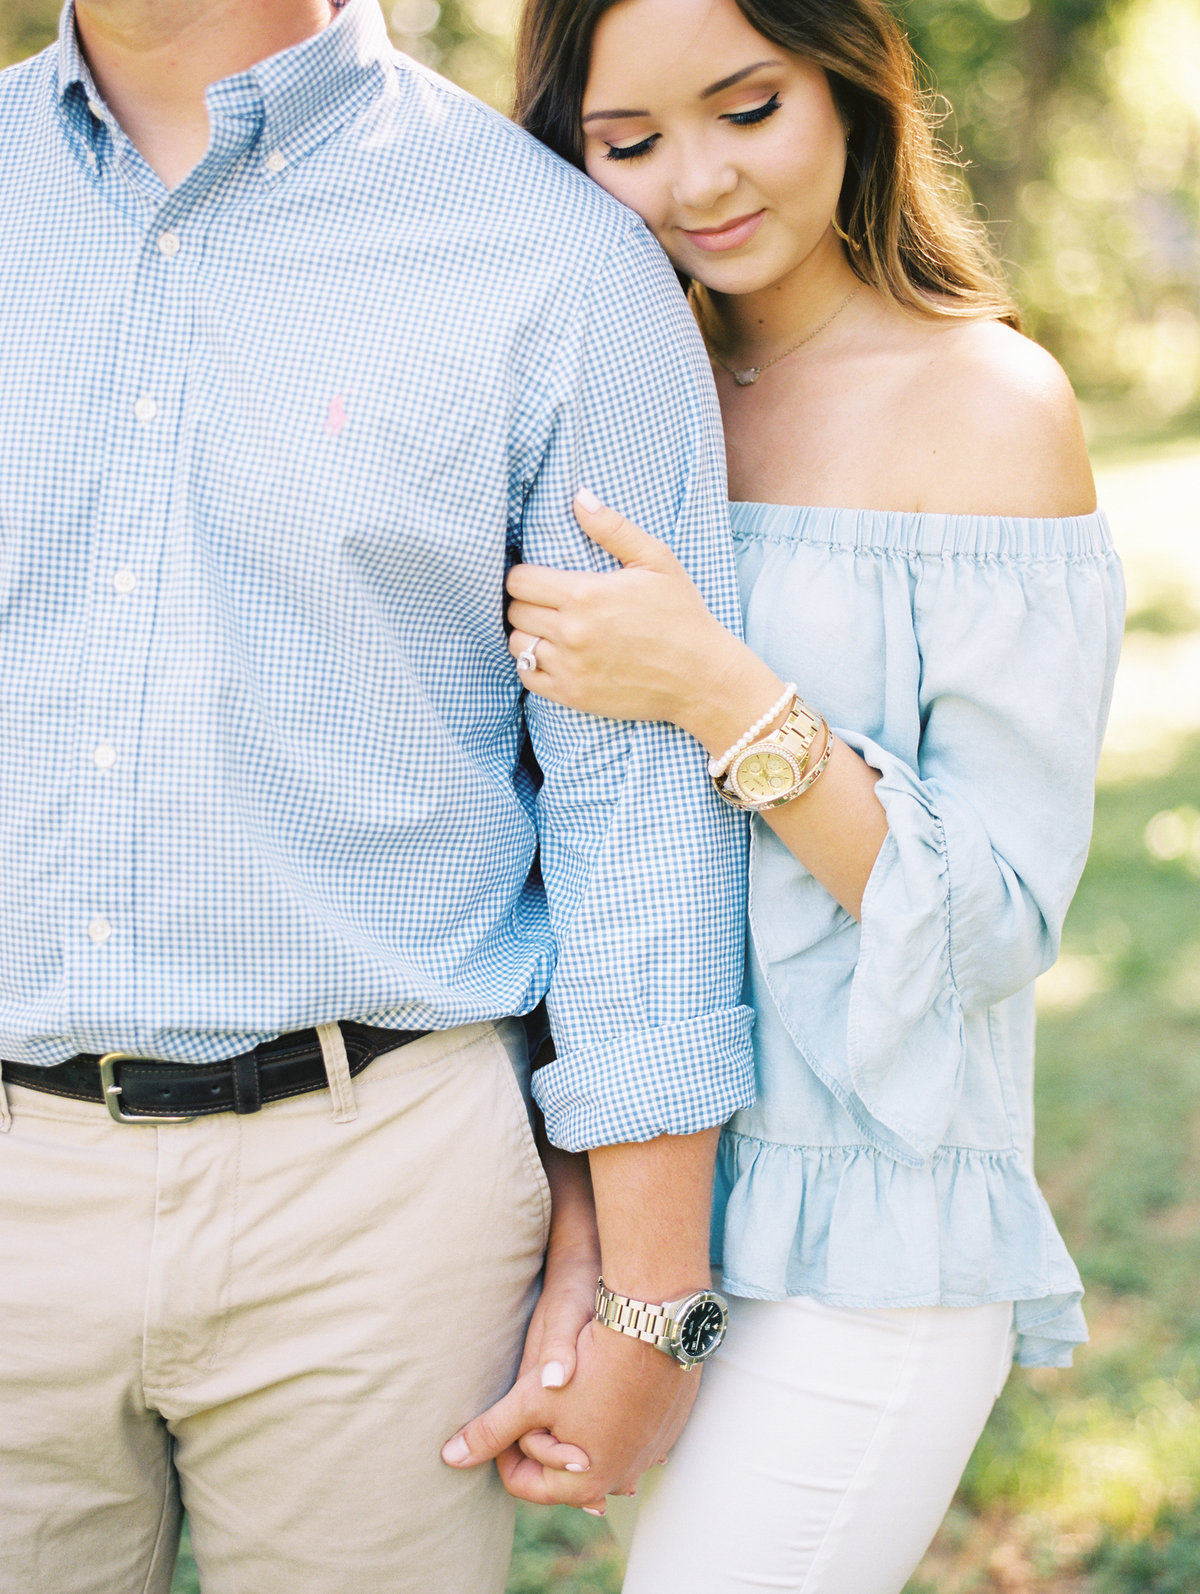 New_Braunfels_Fim_Engagement_Portrait_Photographer_1